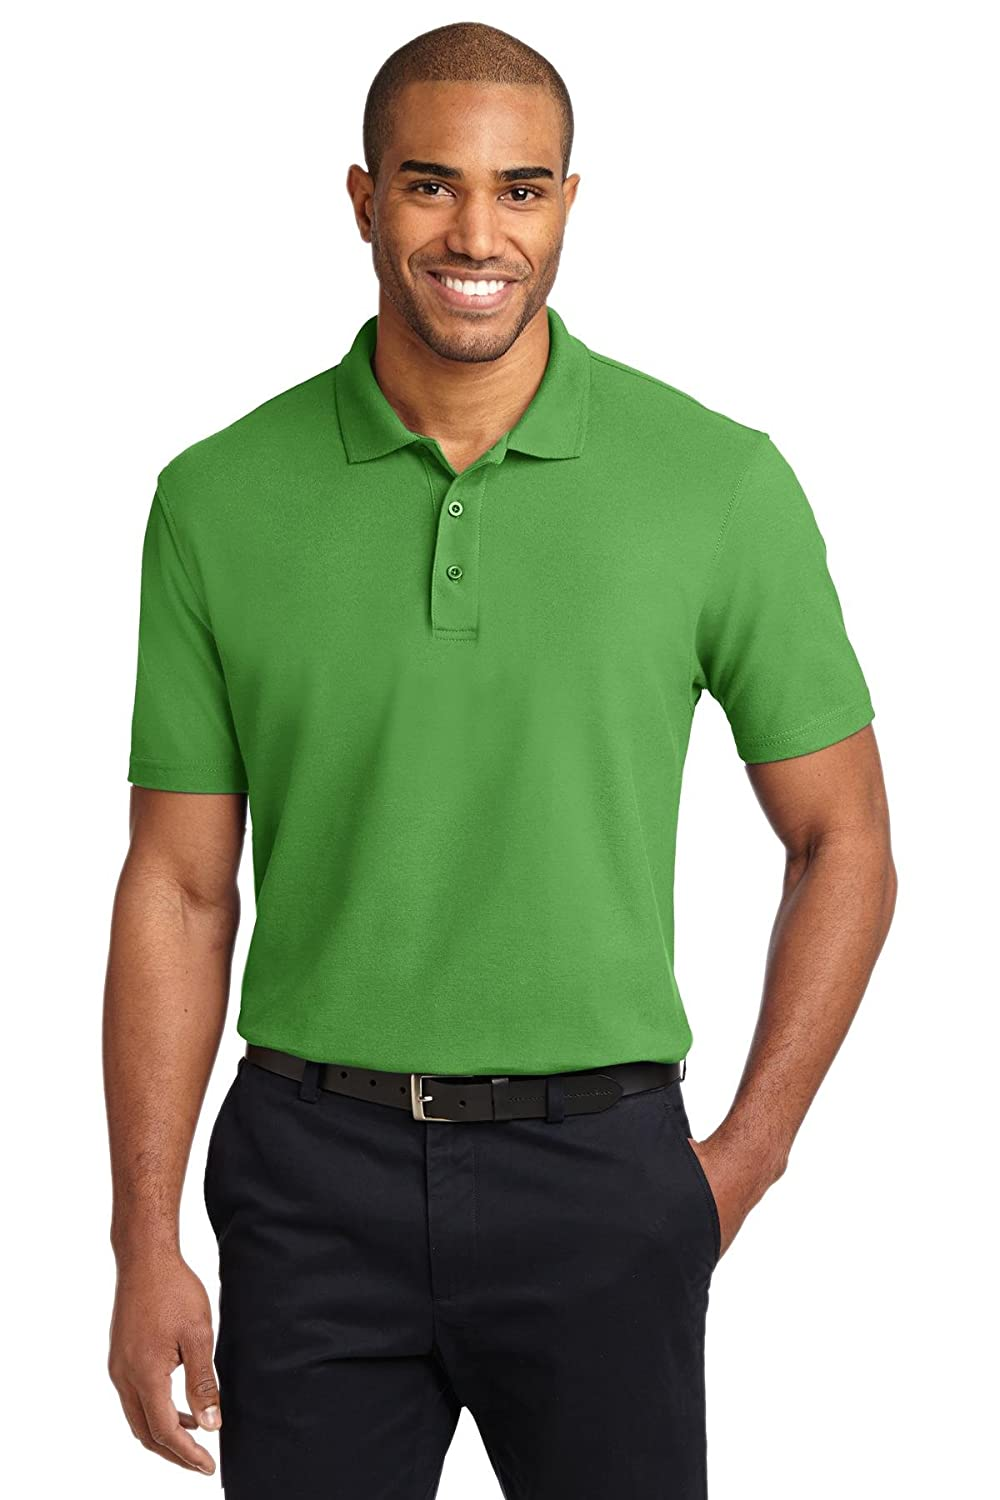 Port Authority Stain-Resistant Polo K510 Vine Green